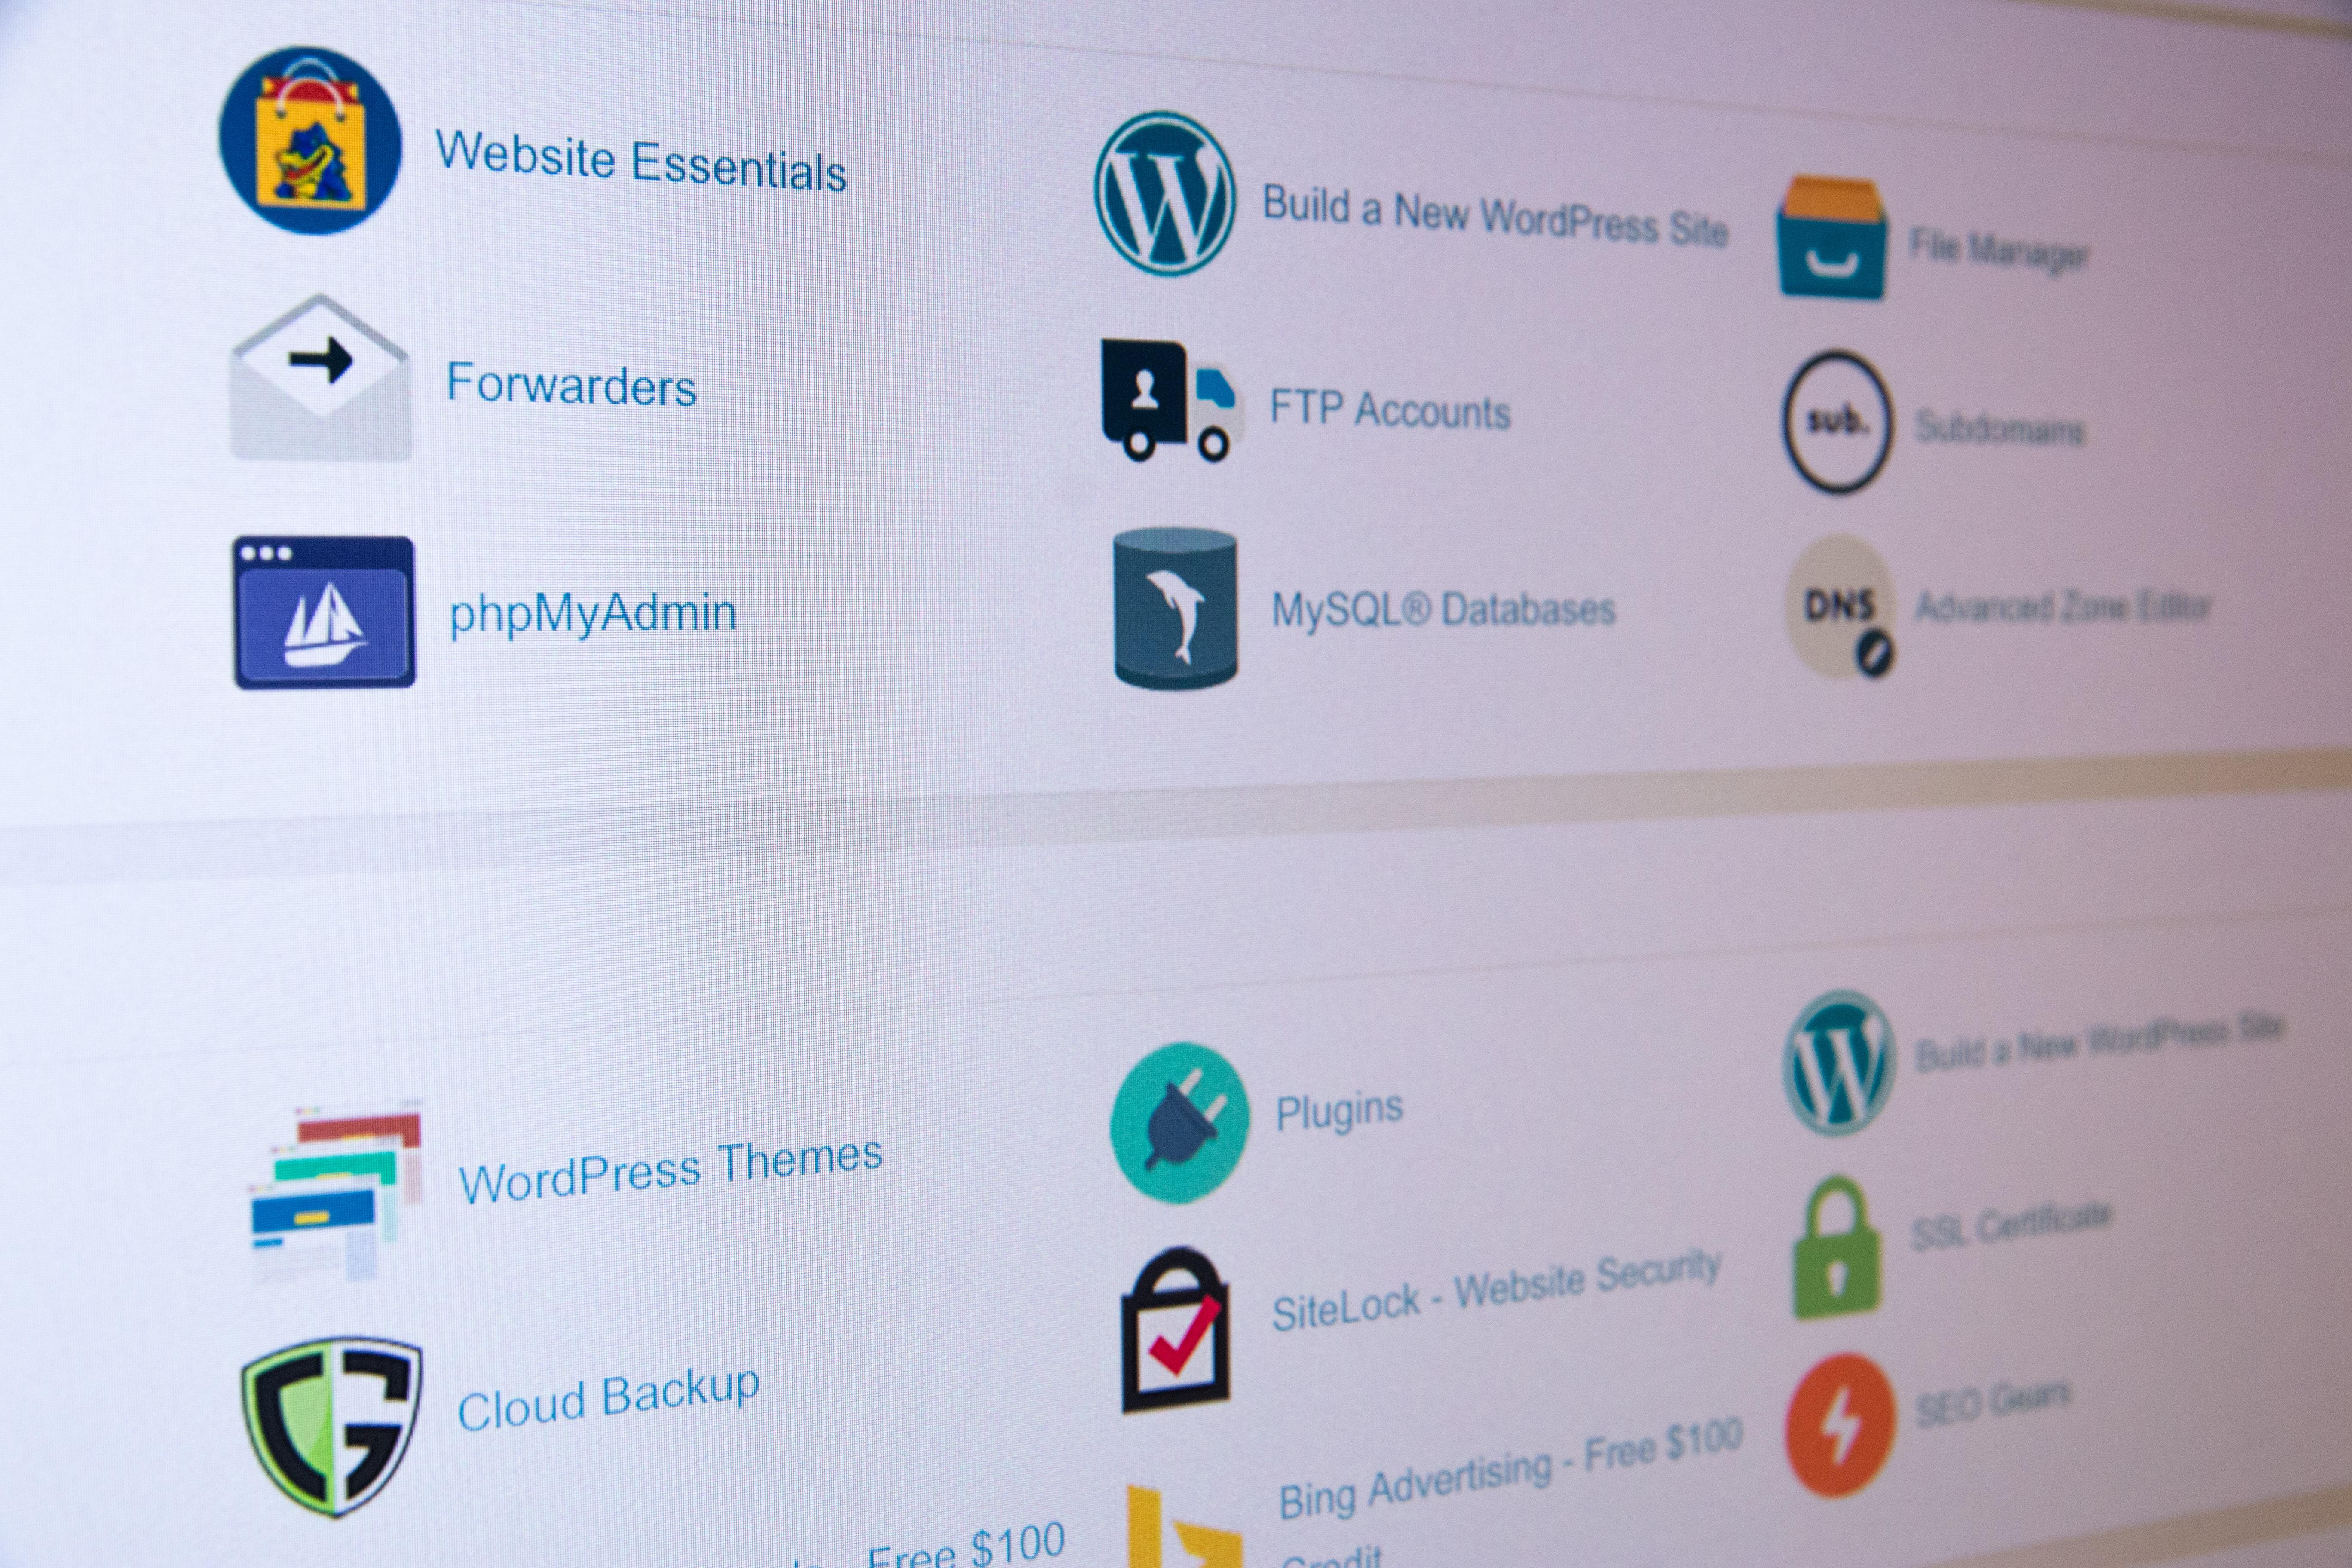 Free Shared Web Hosting for the first year Website Design